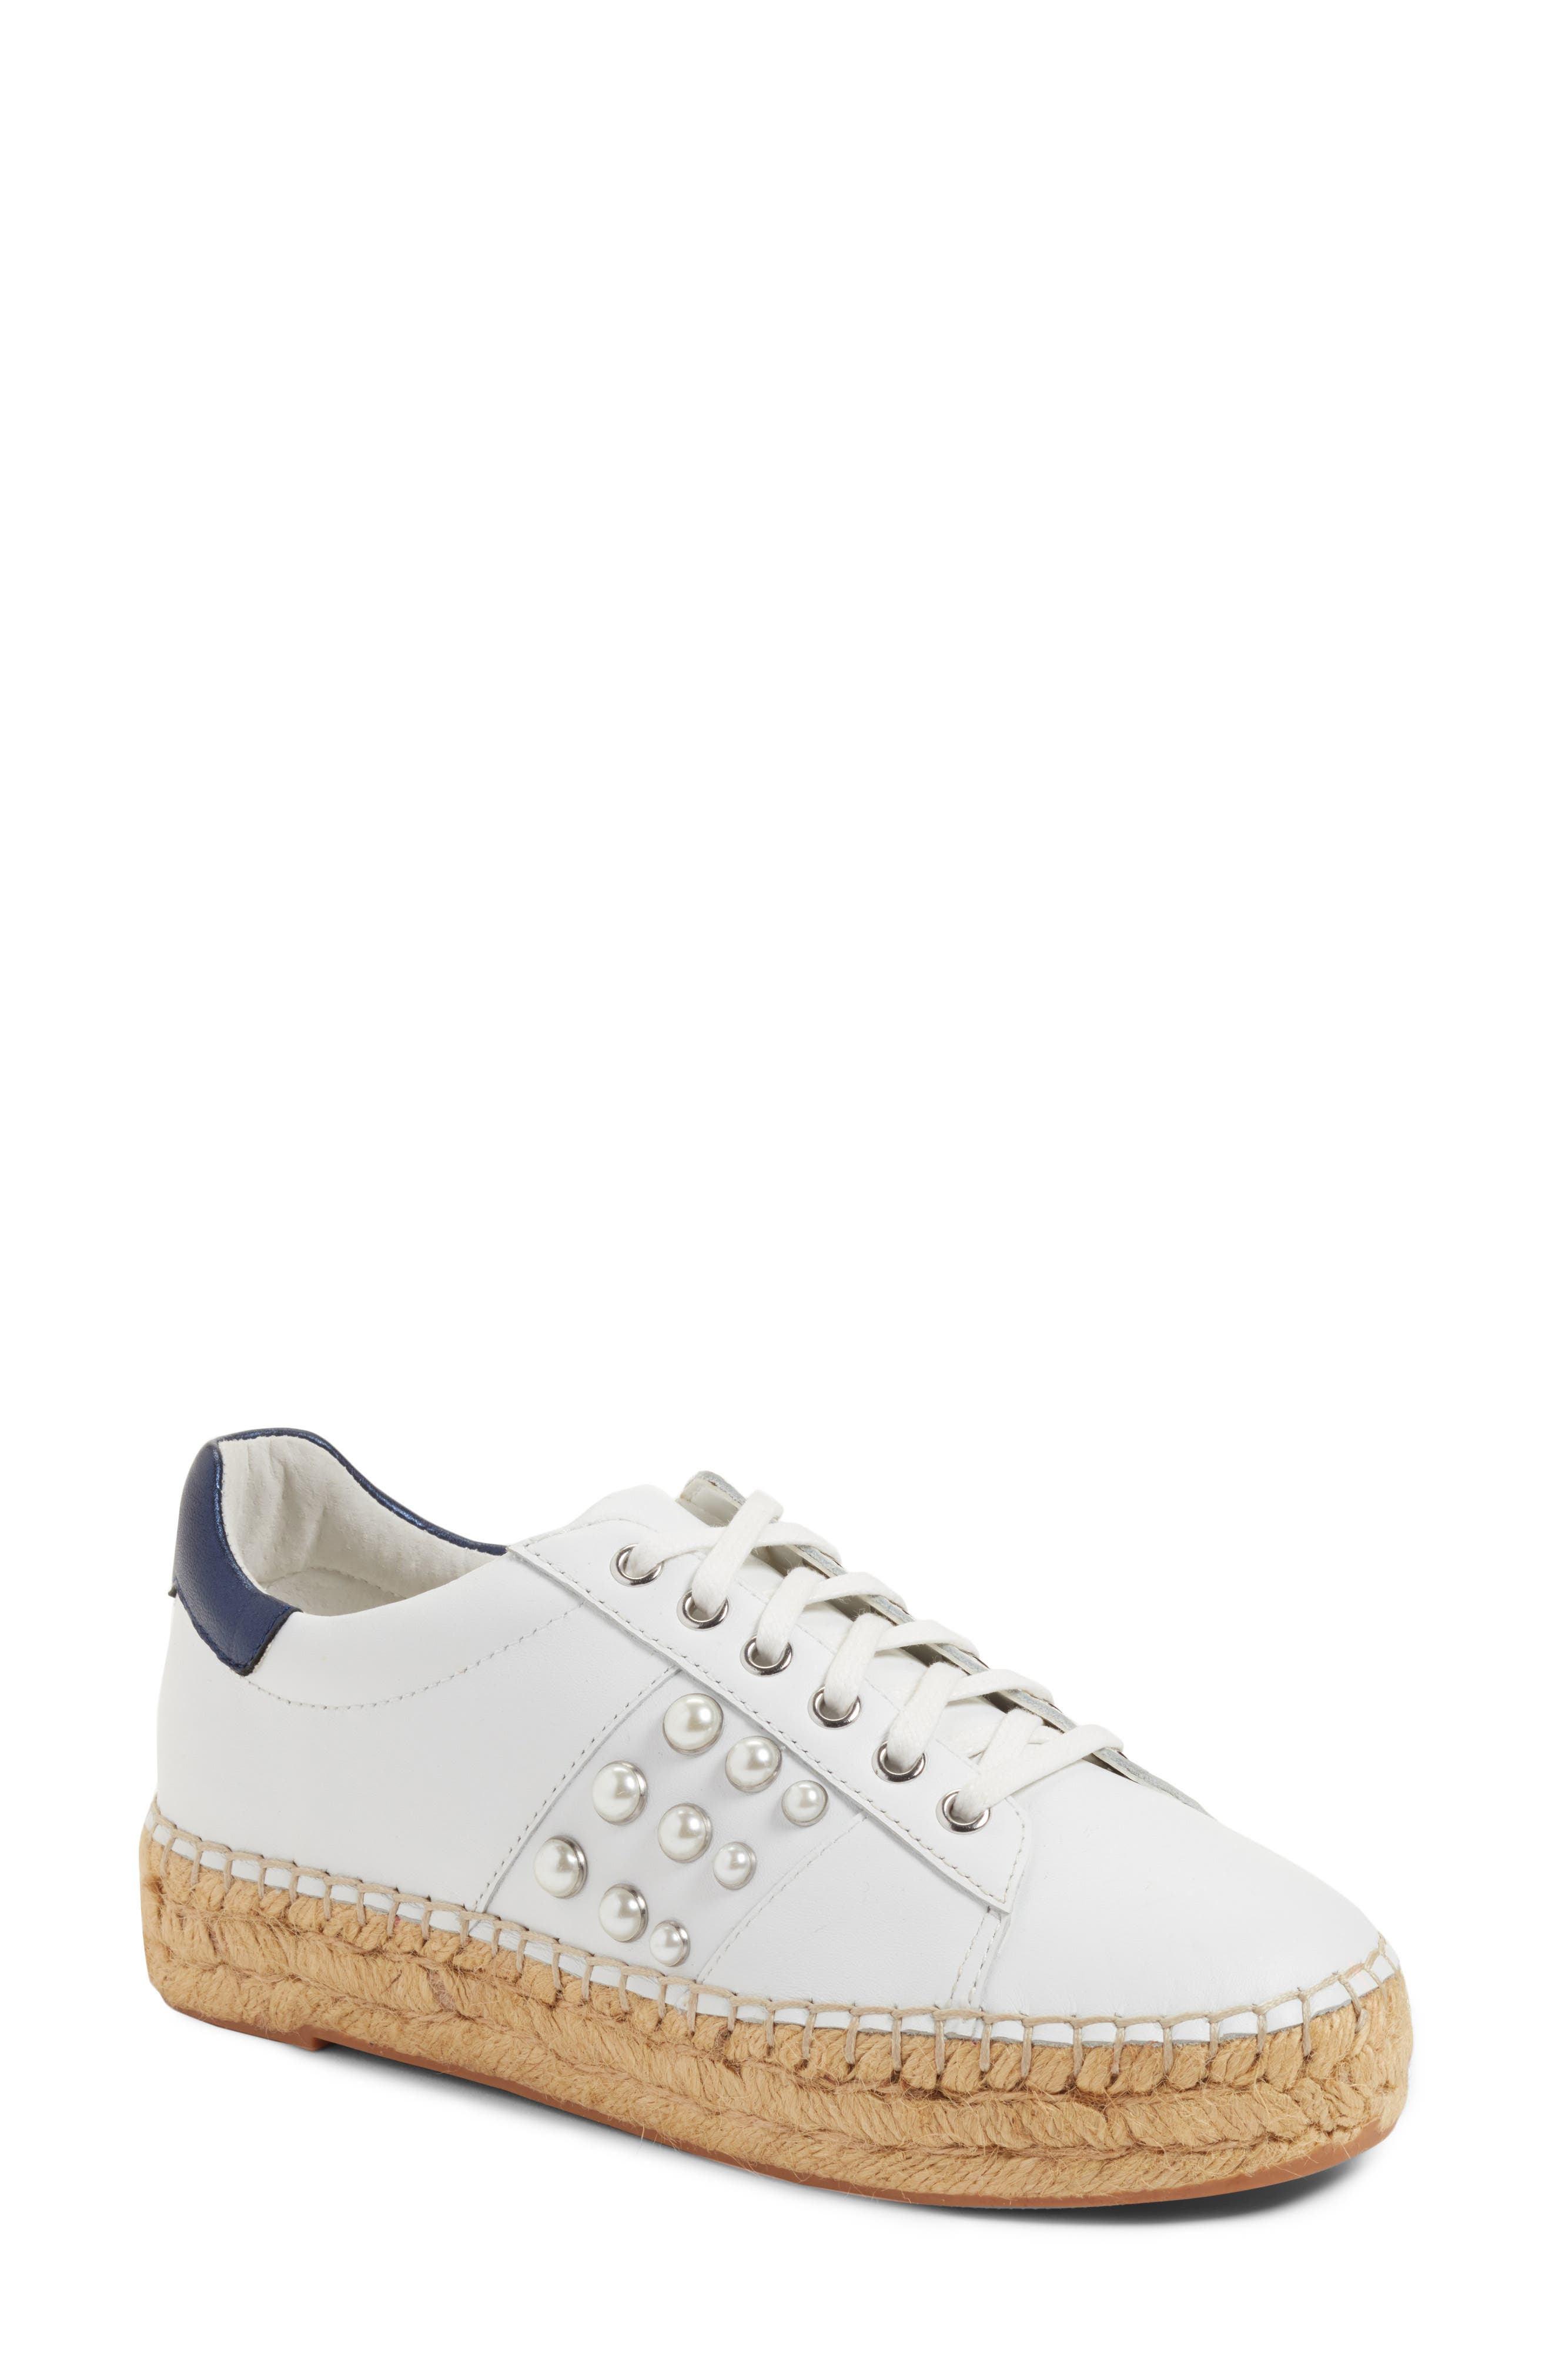 Marge Espadrille Platform Sneaker,                             Main thumbnail 1, color,                             White/ Navy Leather